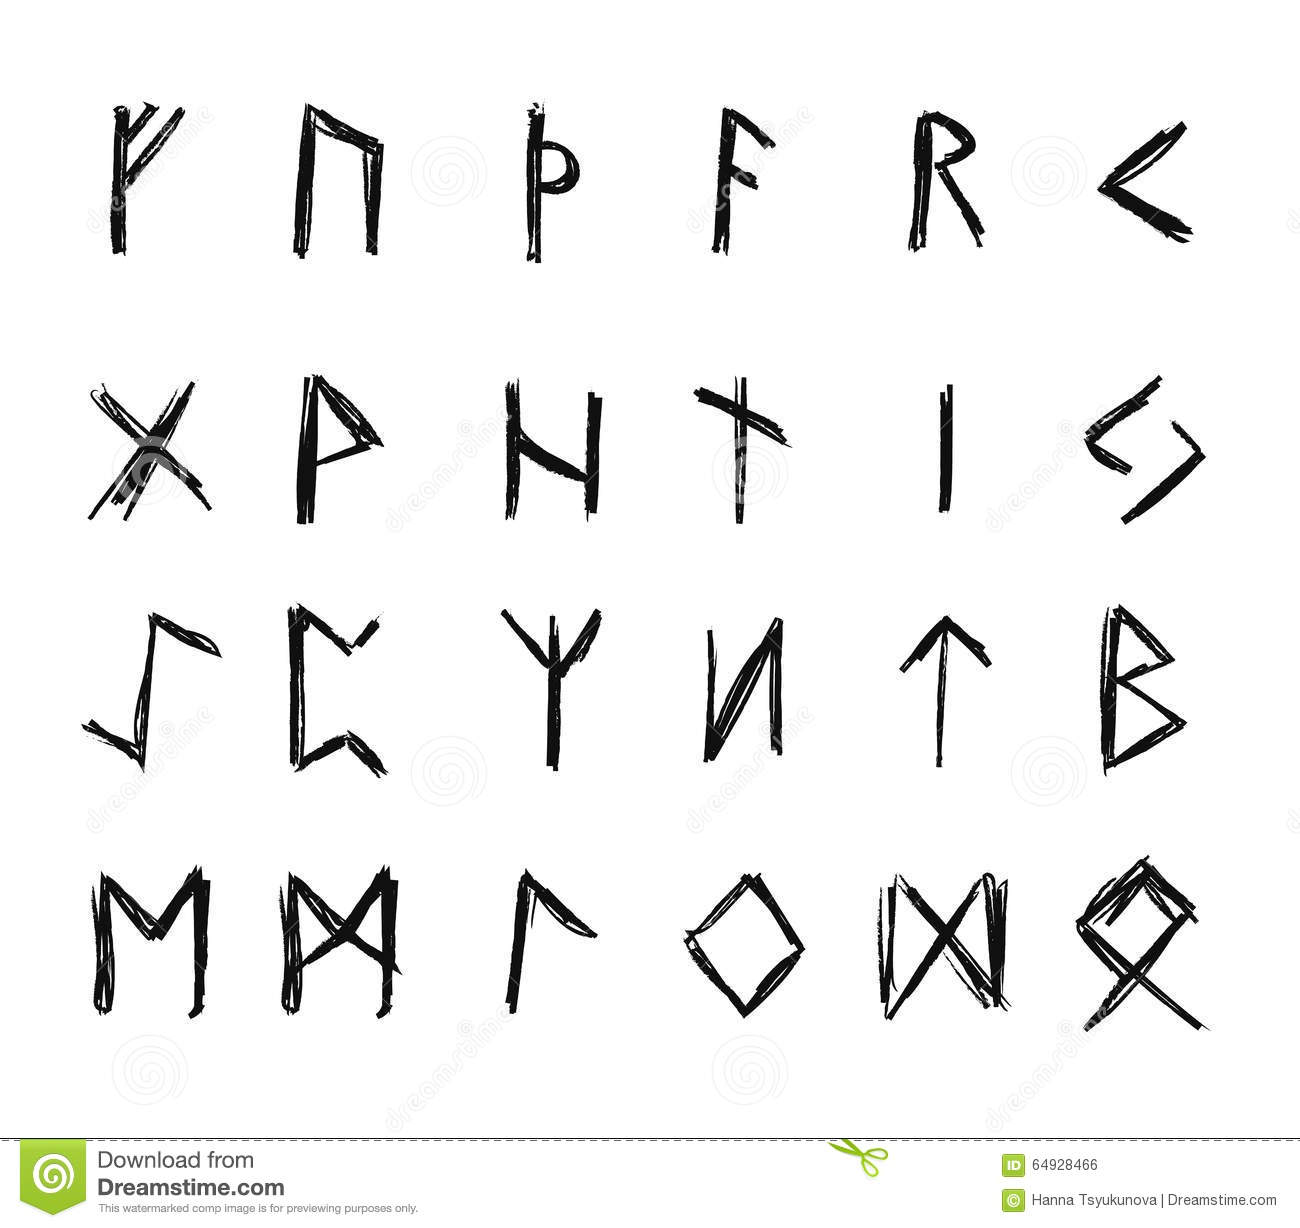 Old Turkic alphabet